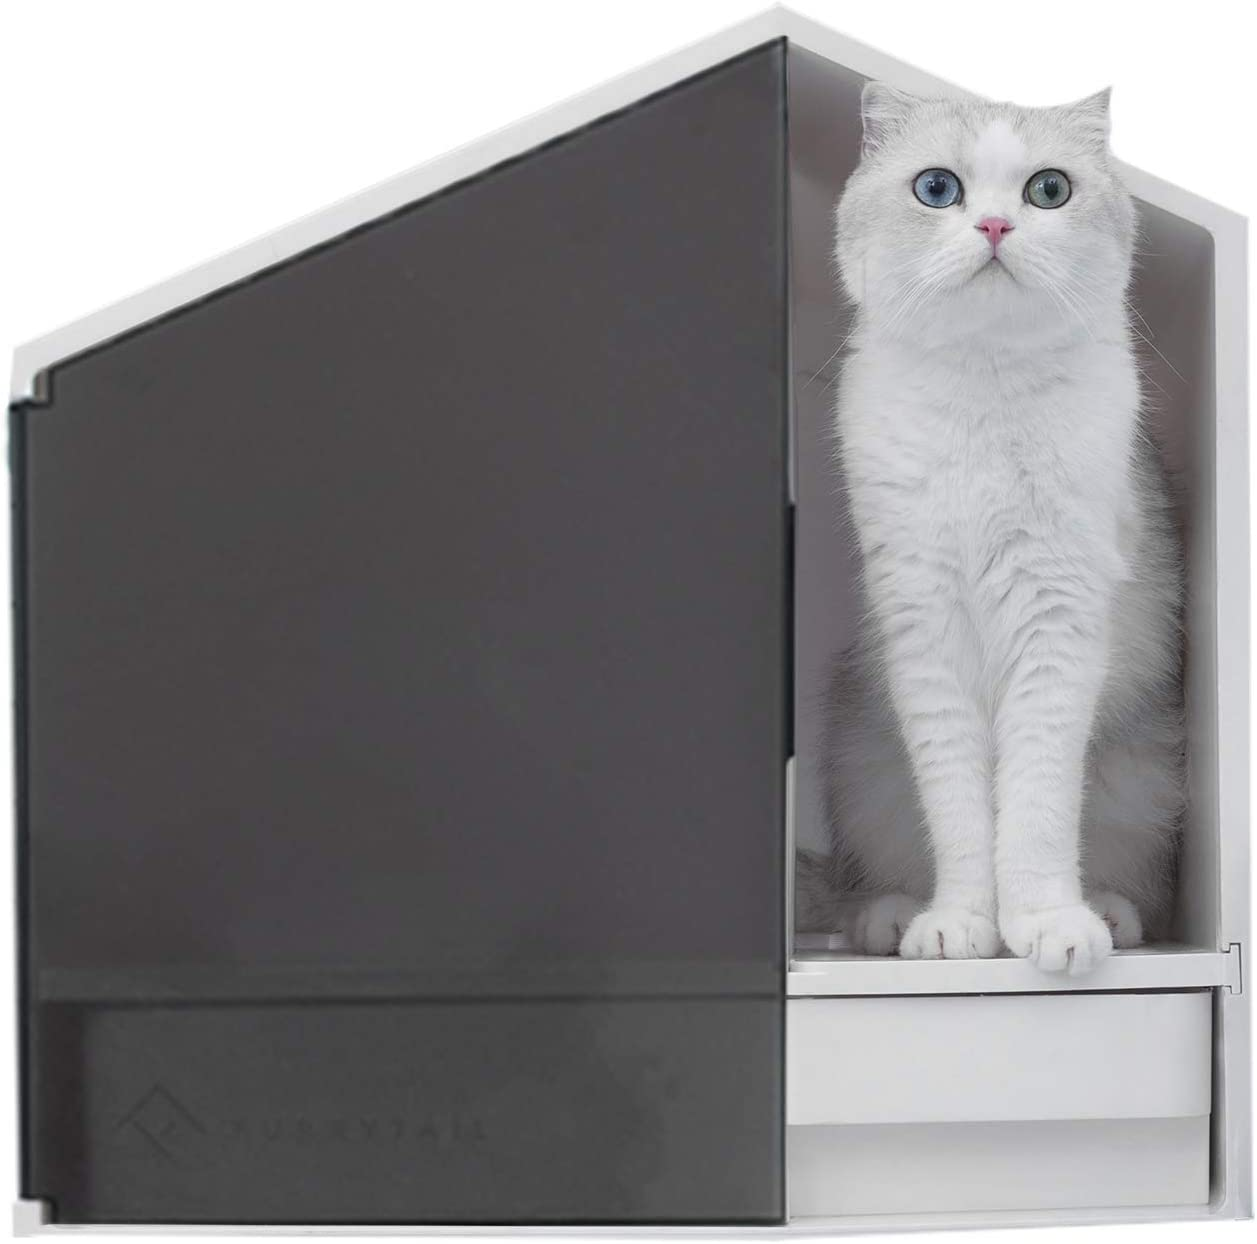 Furrytail Glow House Cat Litter Box with Scoop, Low Entry Modern Cat Litter Box Furniture Enclosure, Prevent Litter Scatter Contain Spraying Cat Privacy Extra Storage Design